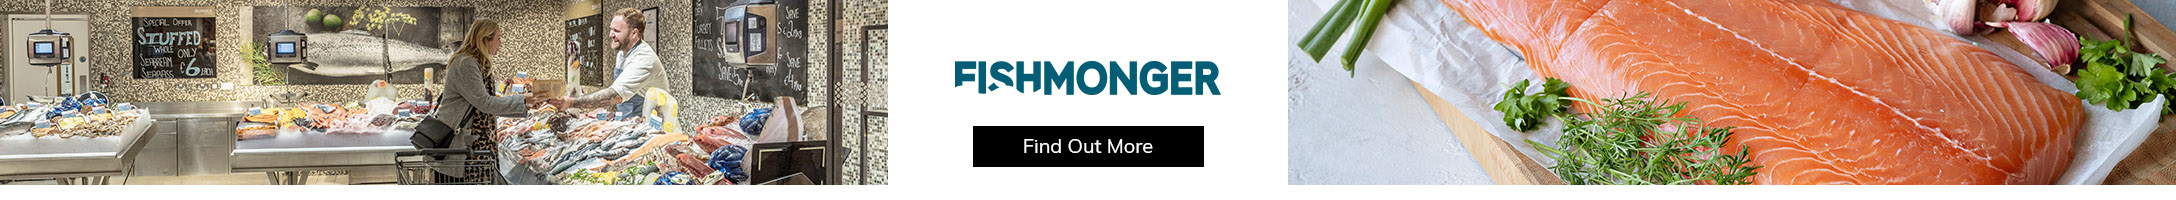 Find out more about our Fishmonger range